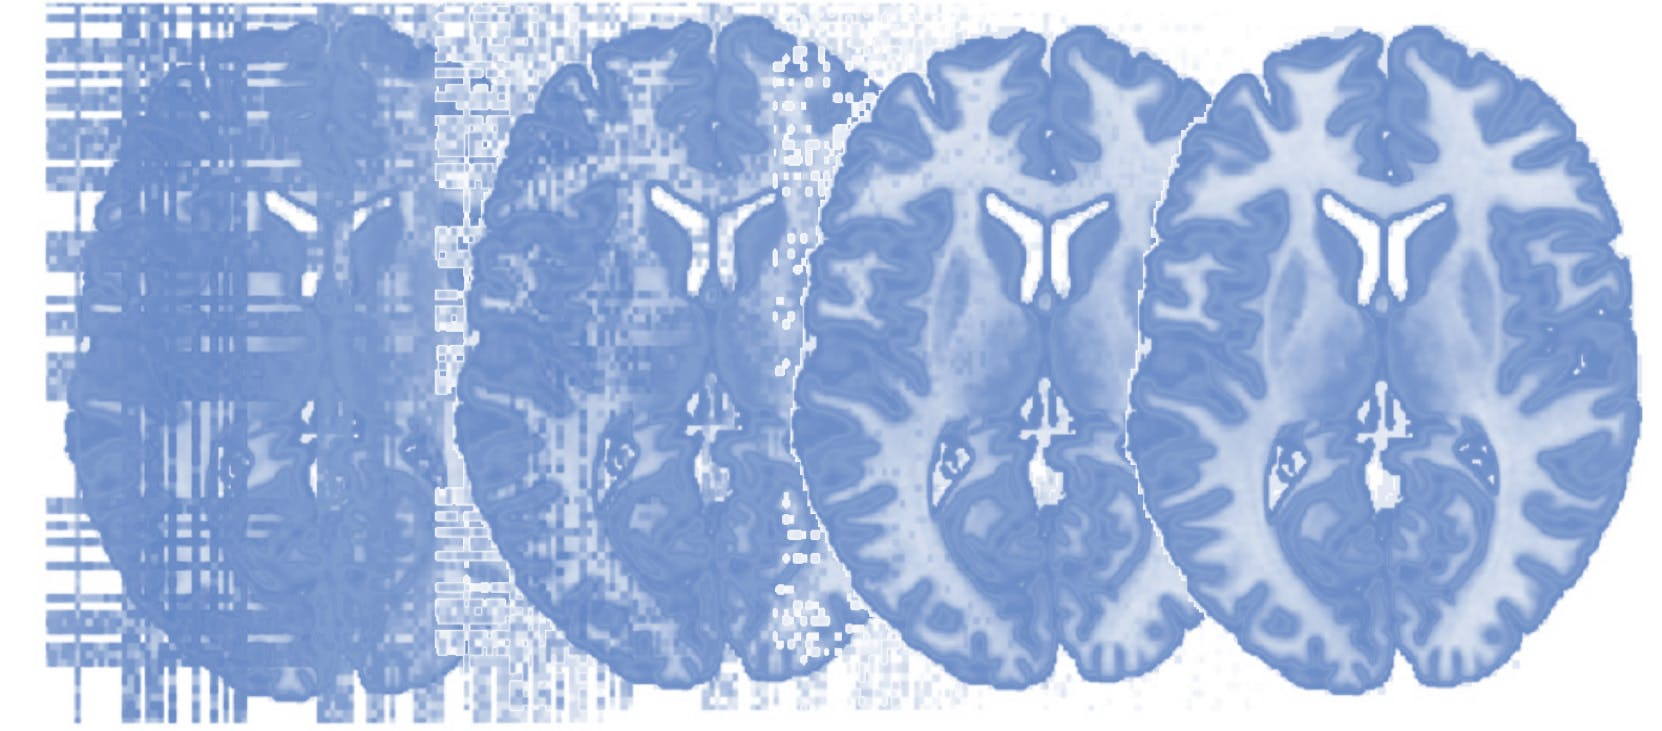 Principles of fMRI 2